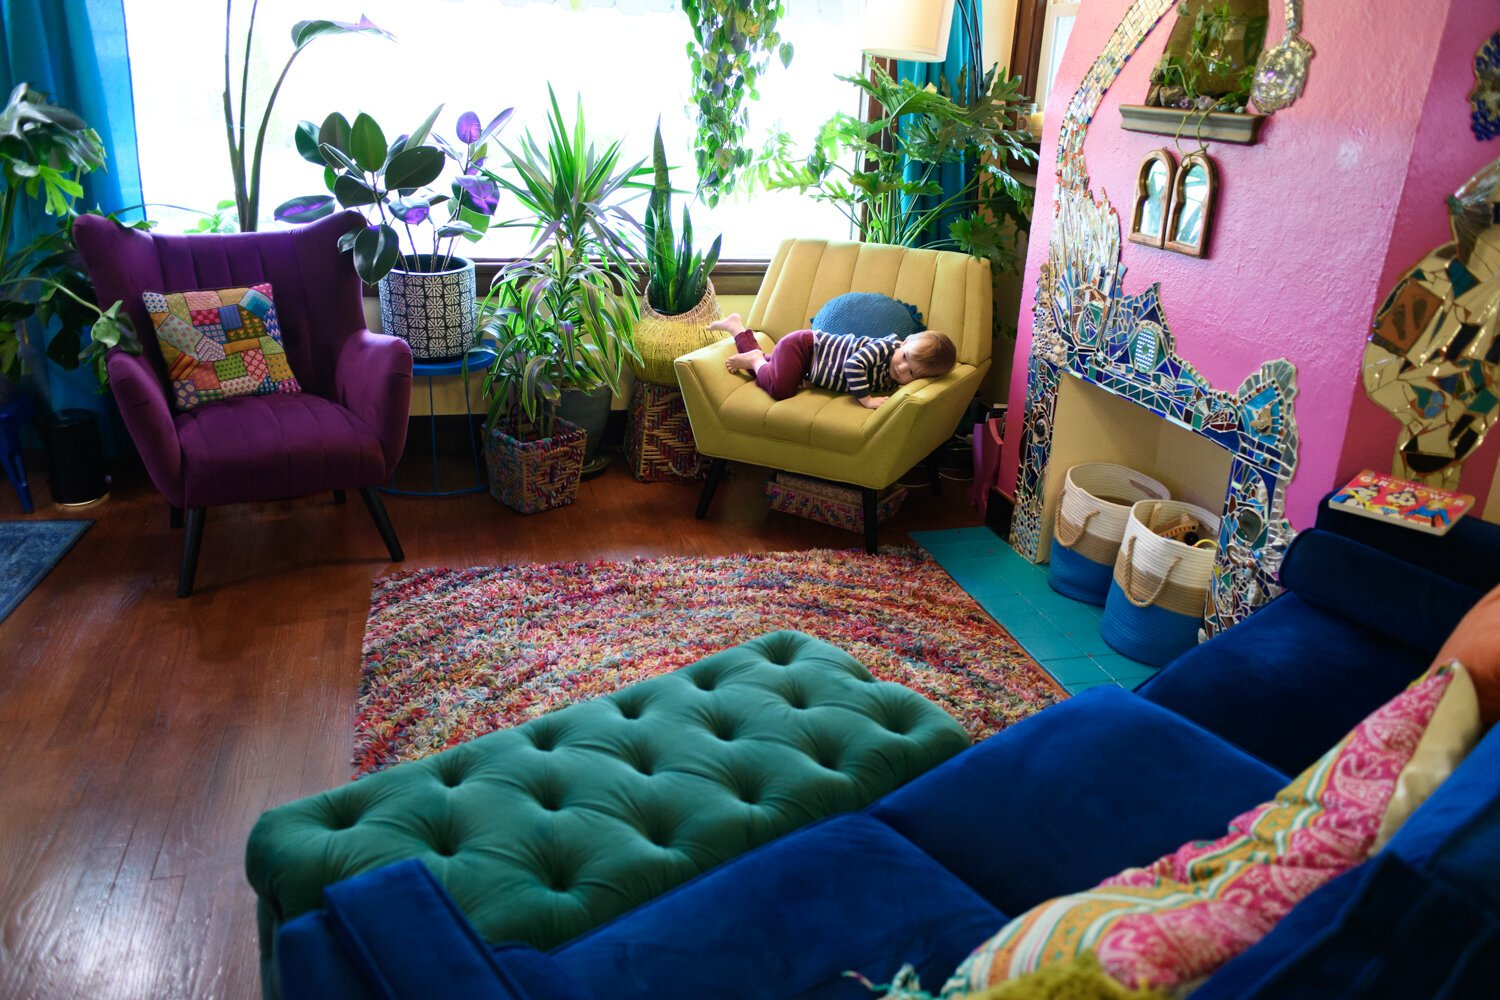 The living room is filled with lots of color and plants.